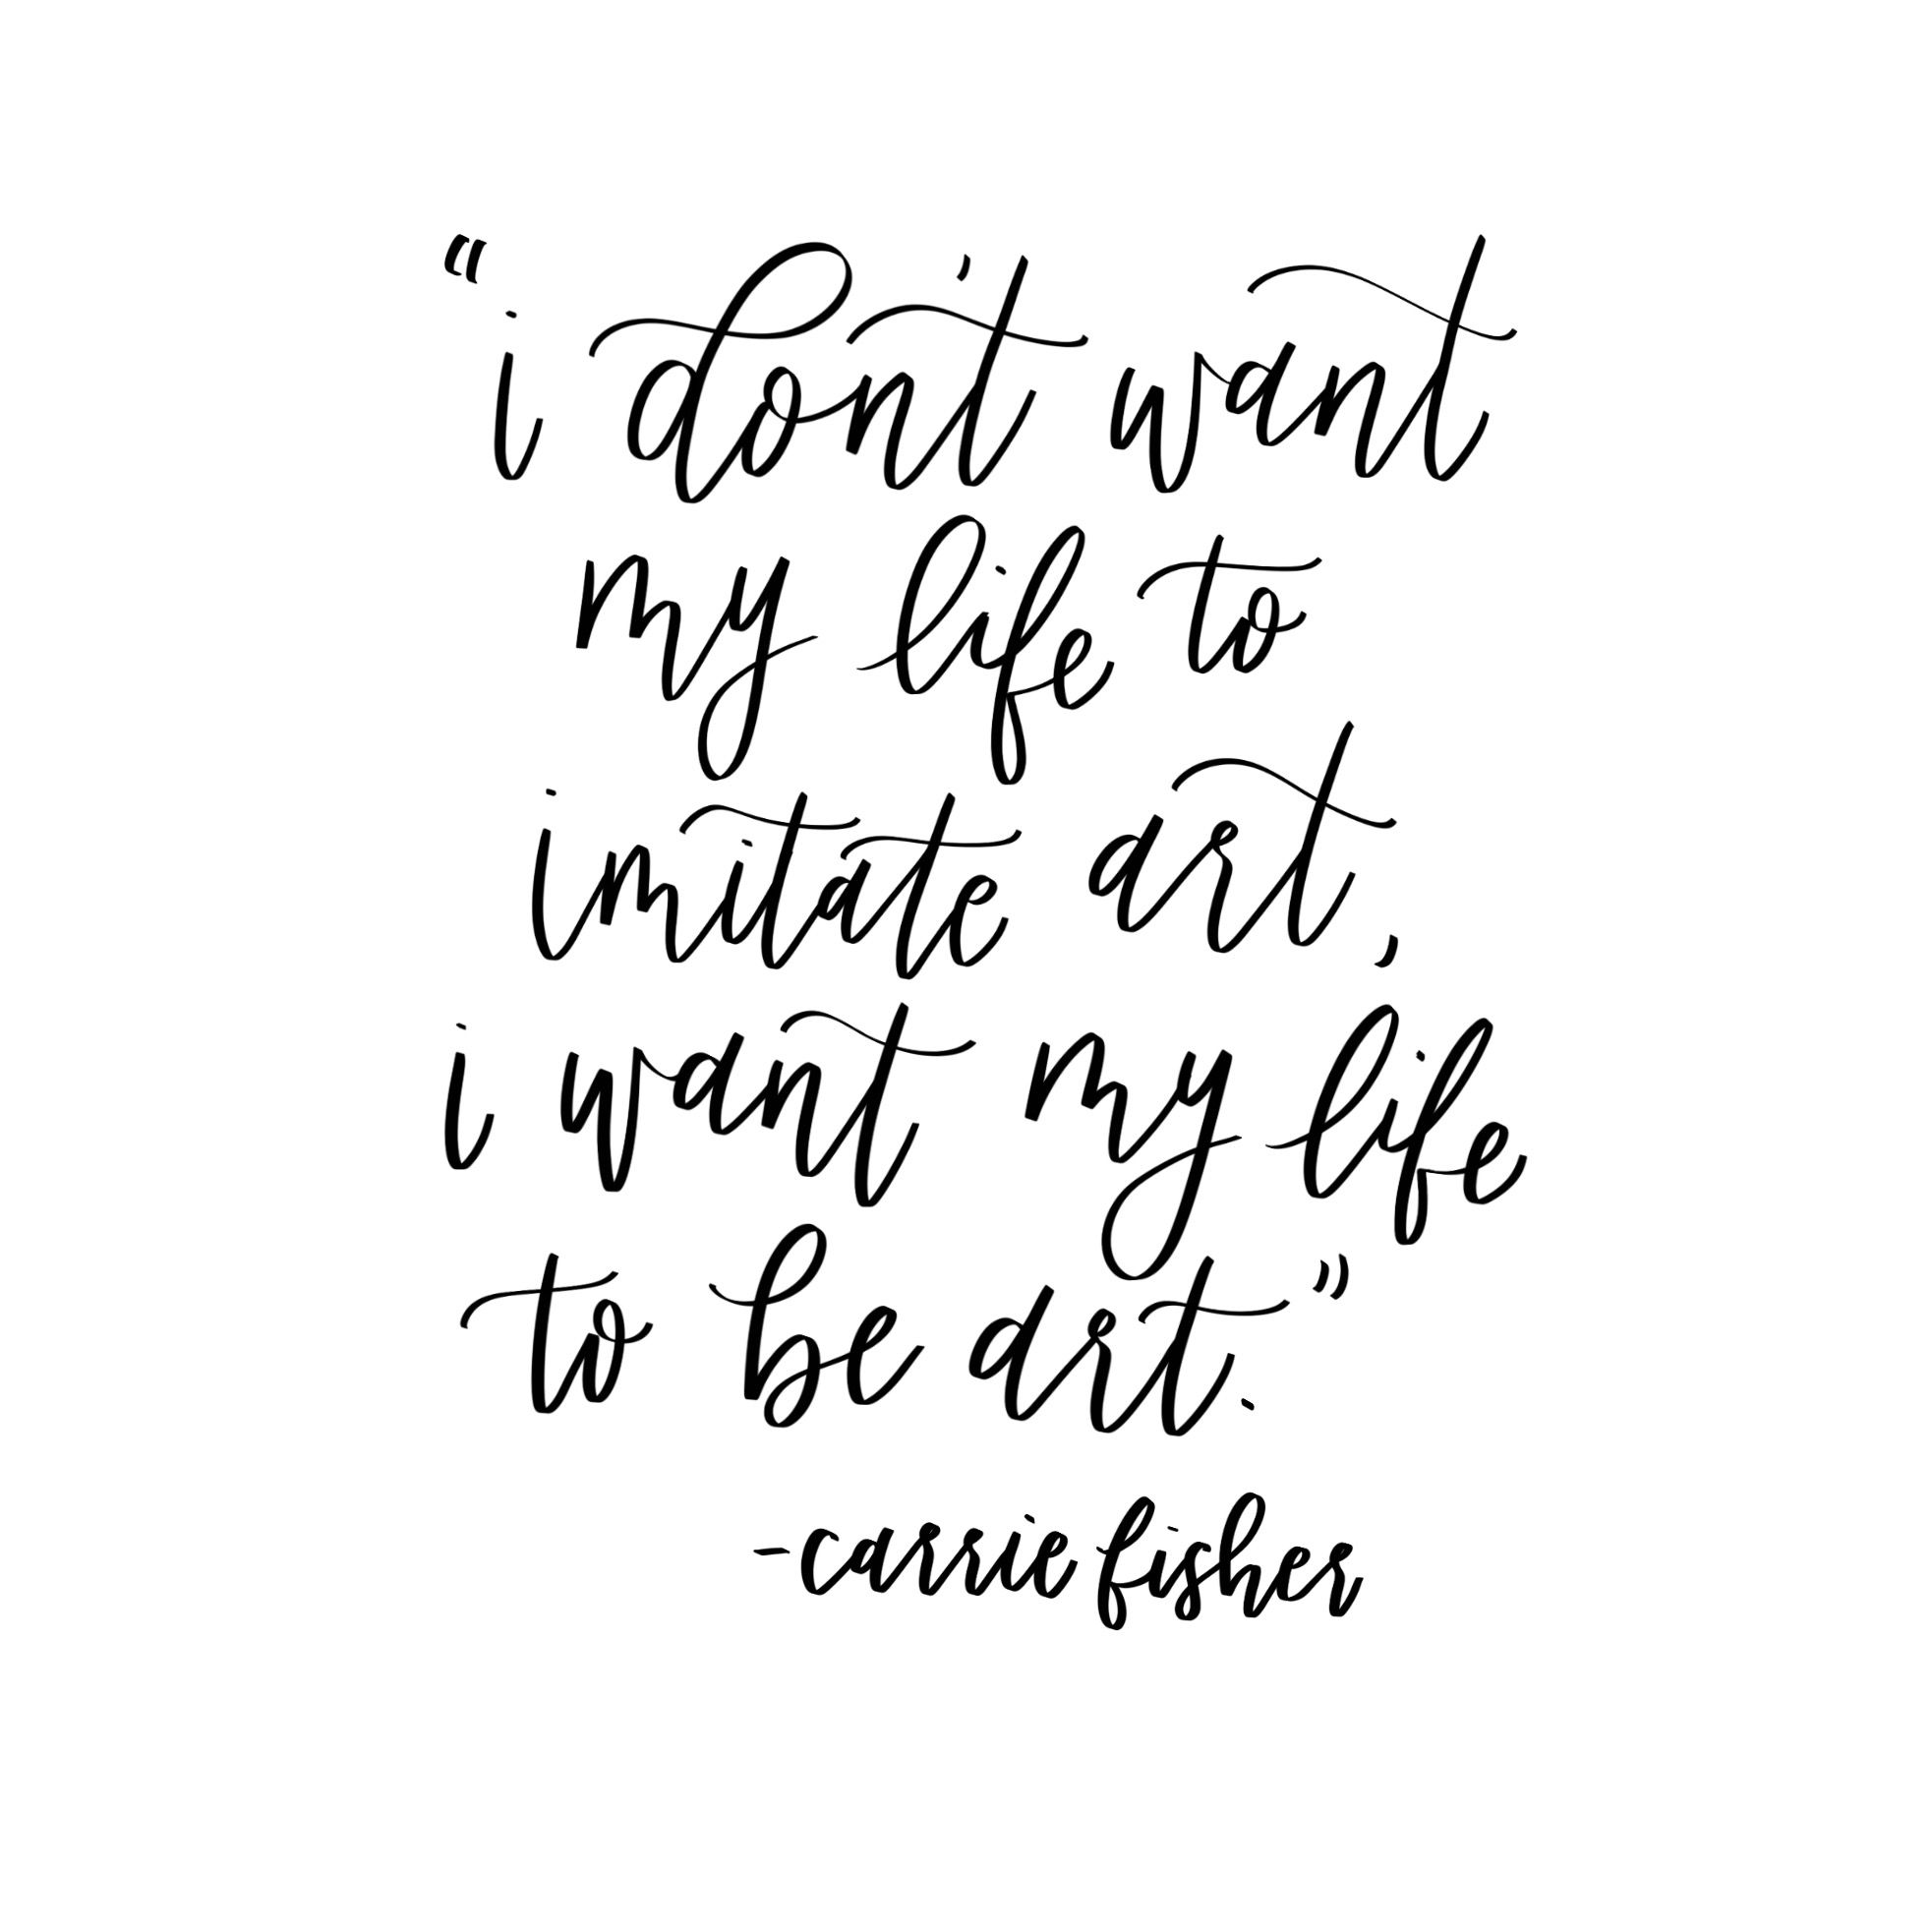 Celebration Of Life Quotes I Don't Want My Life To Imitate Art I Want My Life To Be Art